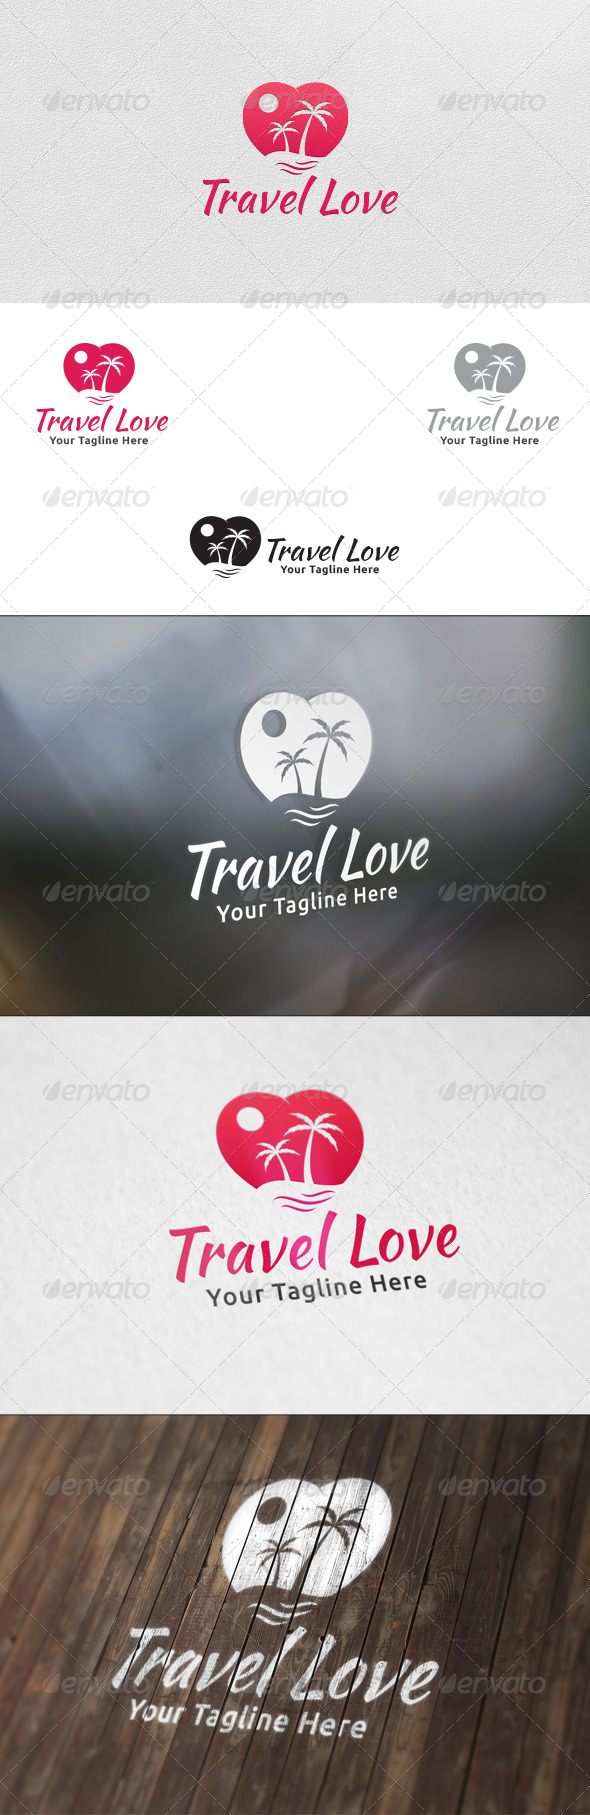 GraphicRiver Travel Love Logo Template 5810398